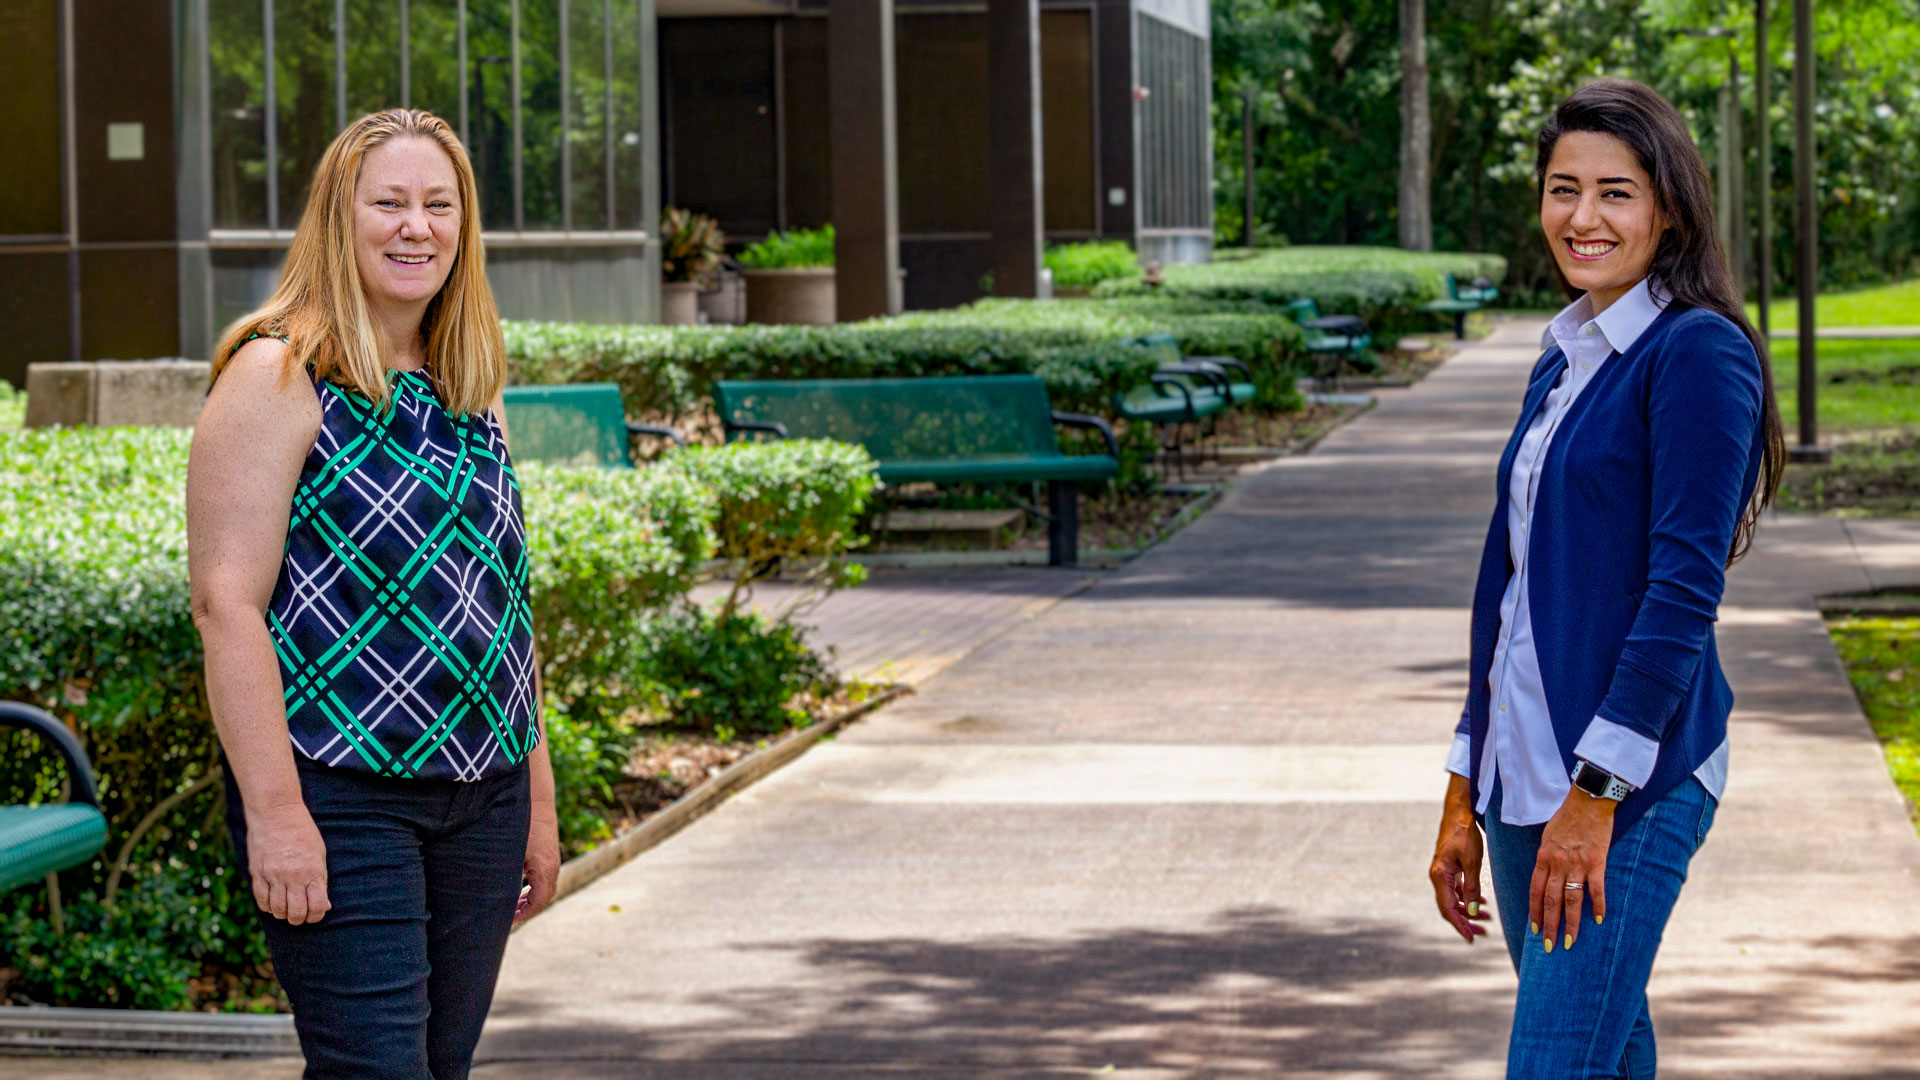 Doctoral psychology students earn top internships